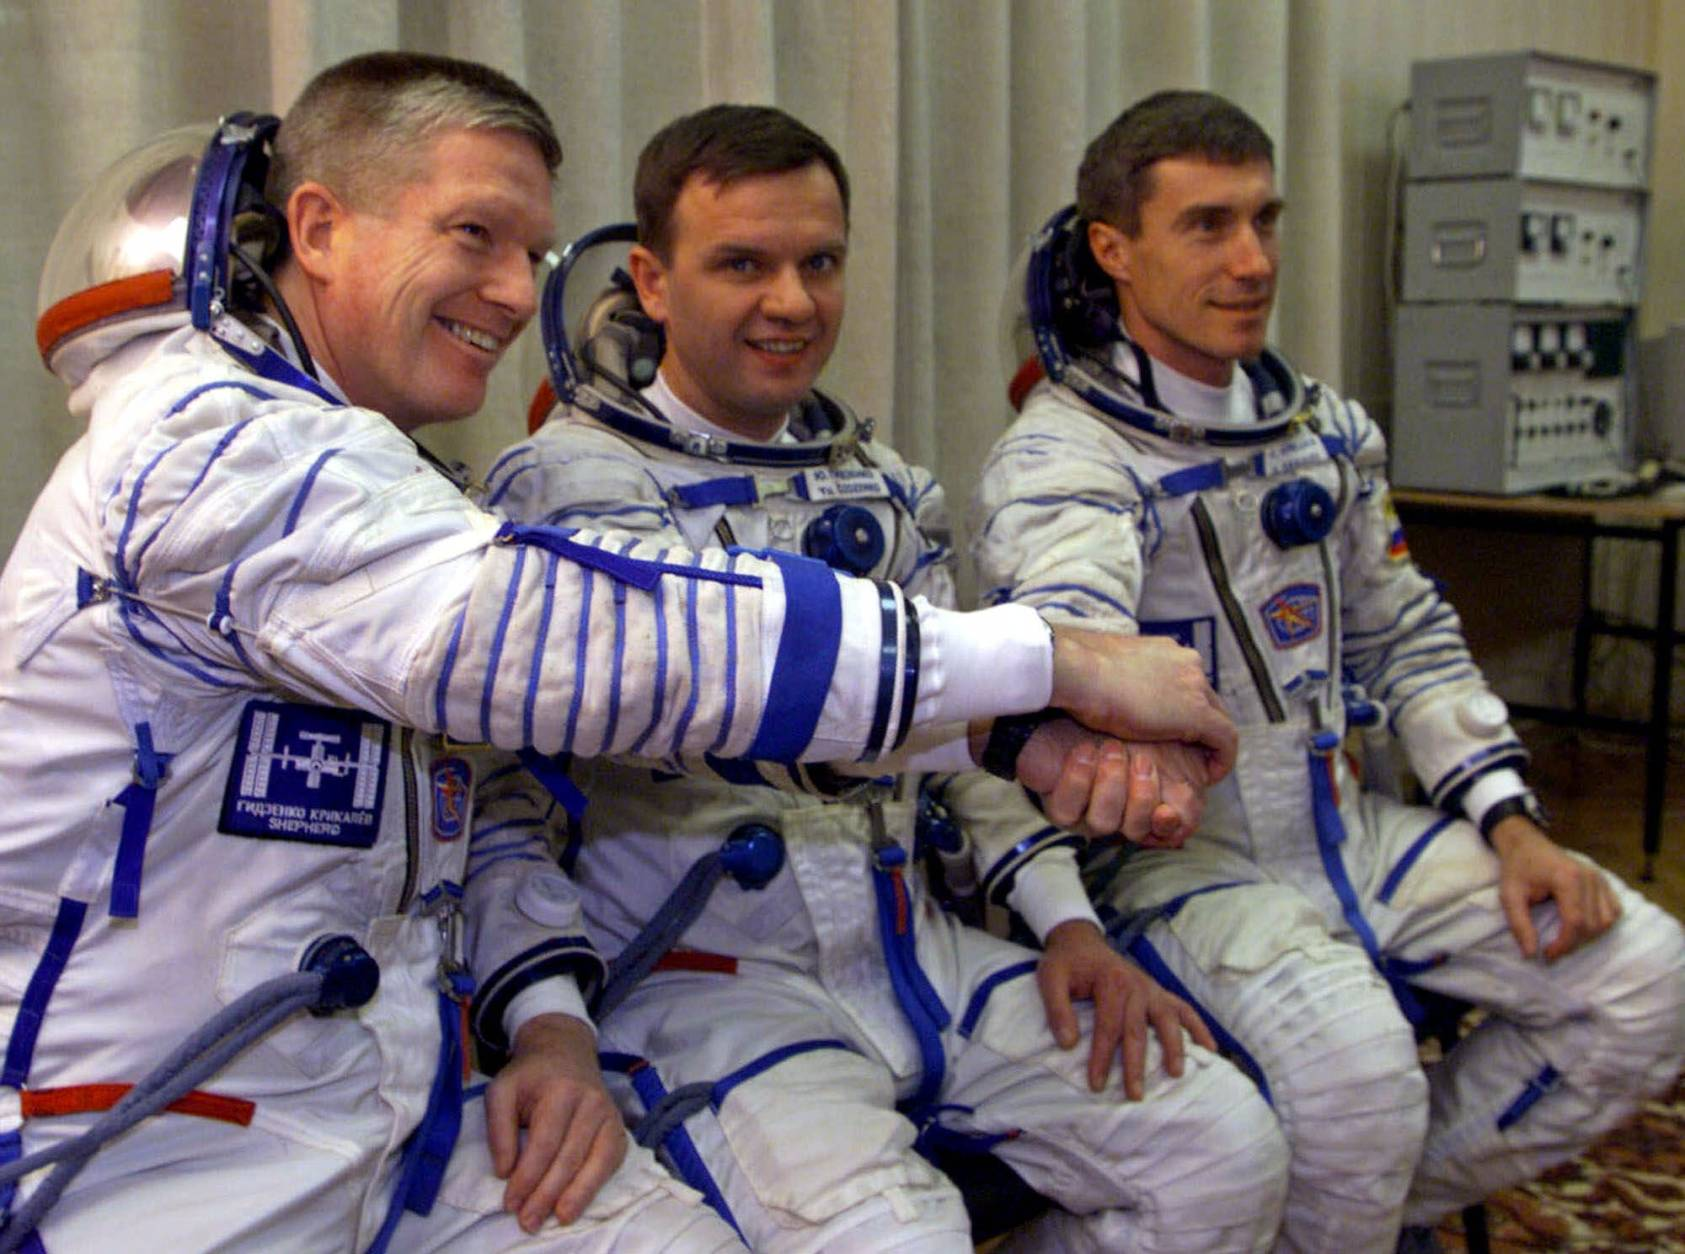 Russian cosmonauts Sergei Krikalyov, right, Yuri Gidzenko and U.S. astronaut Bill Shepherd, left, pose before launching at the Baikonur cosmodrome, Tuesday, Oct. 31, 2000. They became the first residents of the international space station, christening it Alpha on Nov. 2, 2000. (AP Photo/Pool)